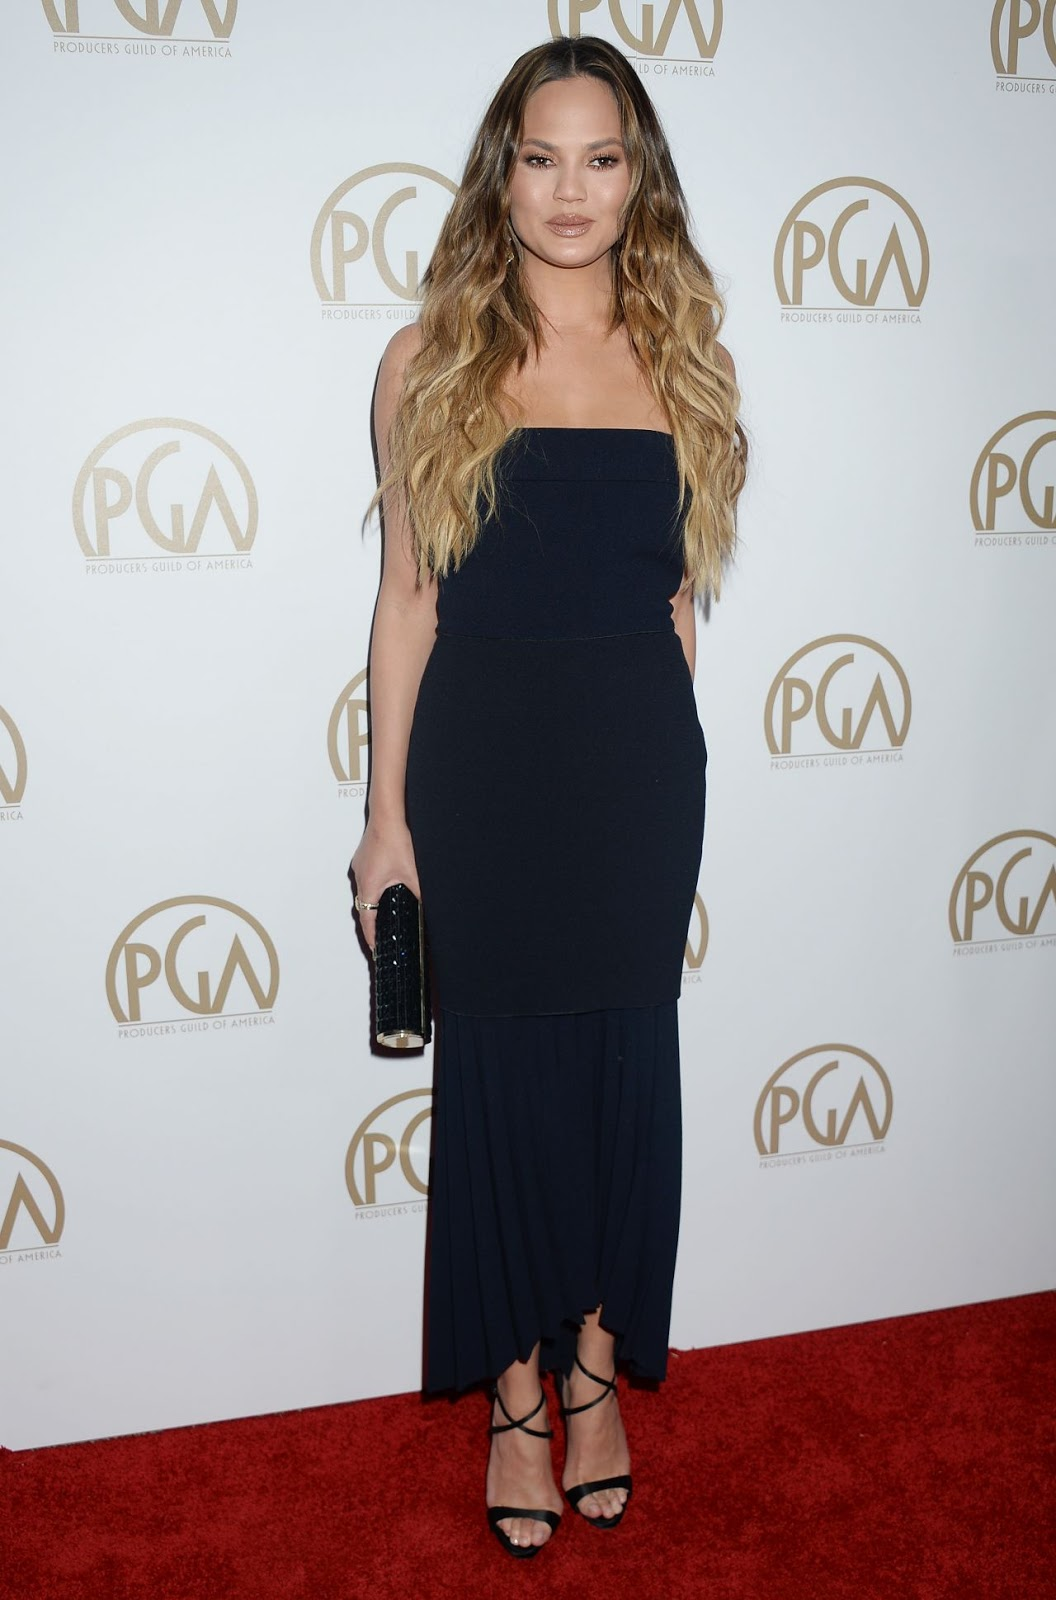 Chrissy Teigen showcases incredible physique at the Producers Guild Awards